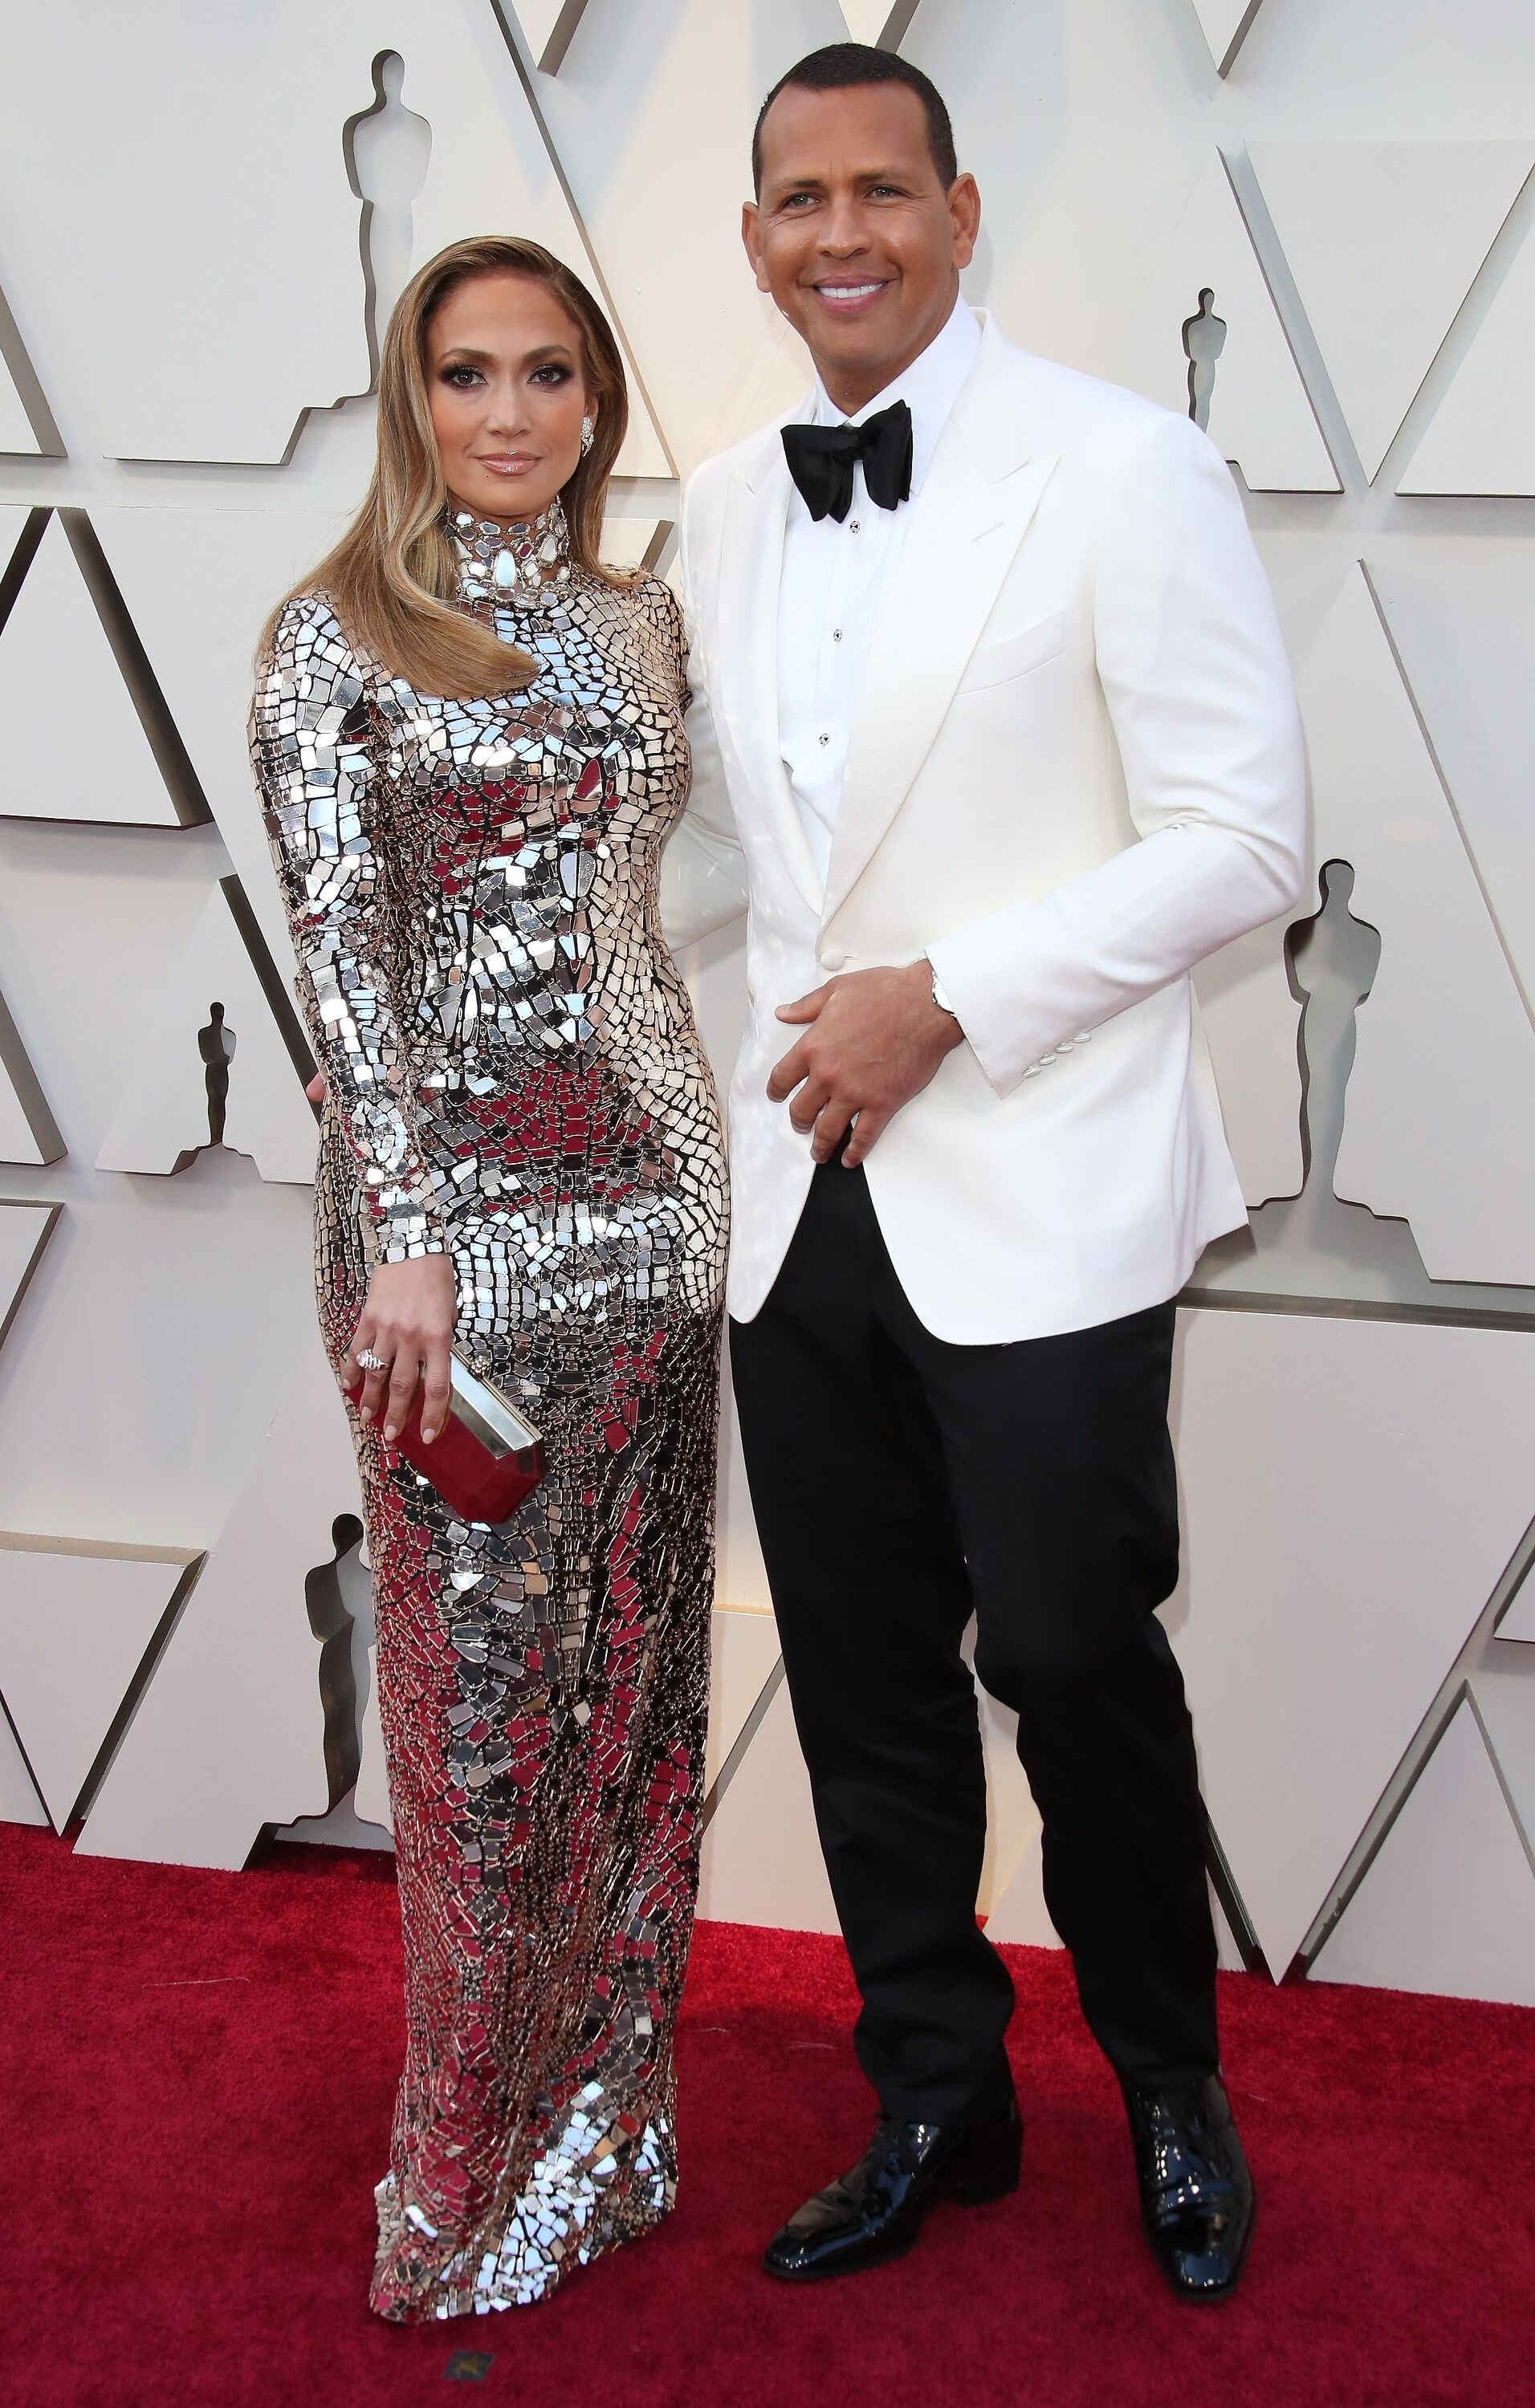 Alex Rodriguez and Jennifer Lopez at the 91st Annual Academy Awards on February 24, 2019 | Photo: Getty Images